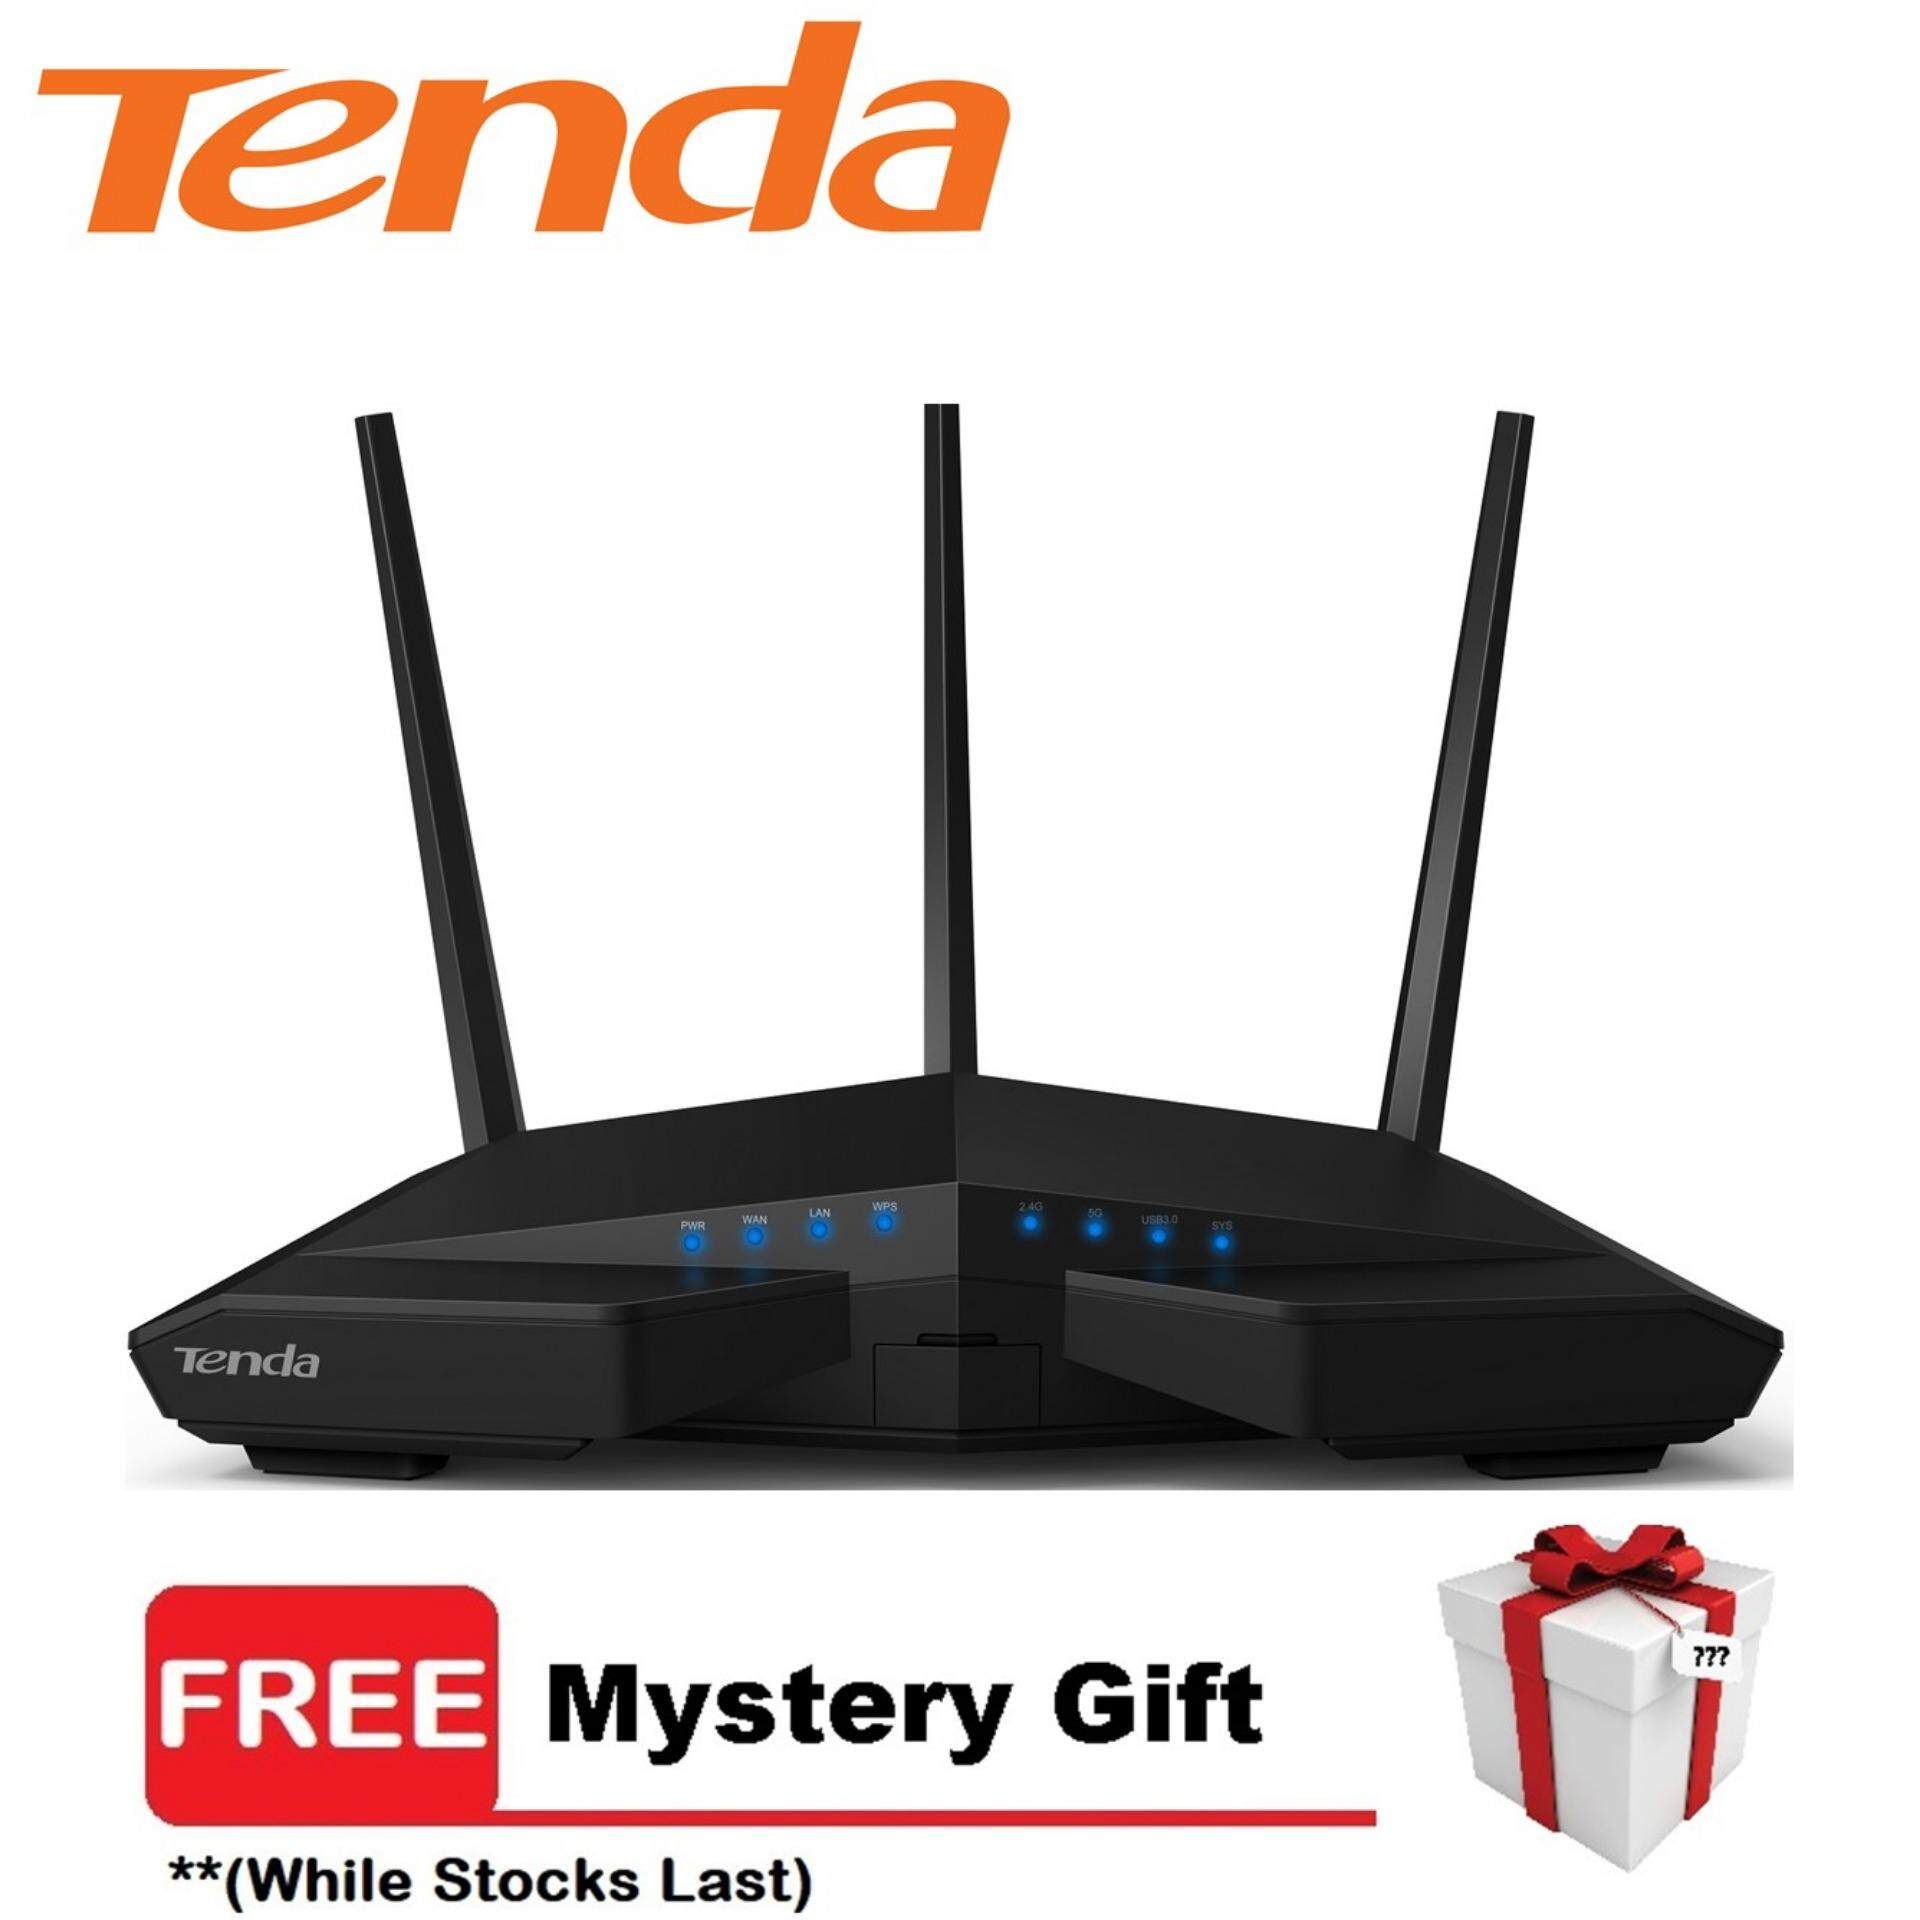 Sell Wifi Router Tenda Cheapest Best Quality My Store N301 Wireless 2 Antenna White N 301 Myr 289